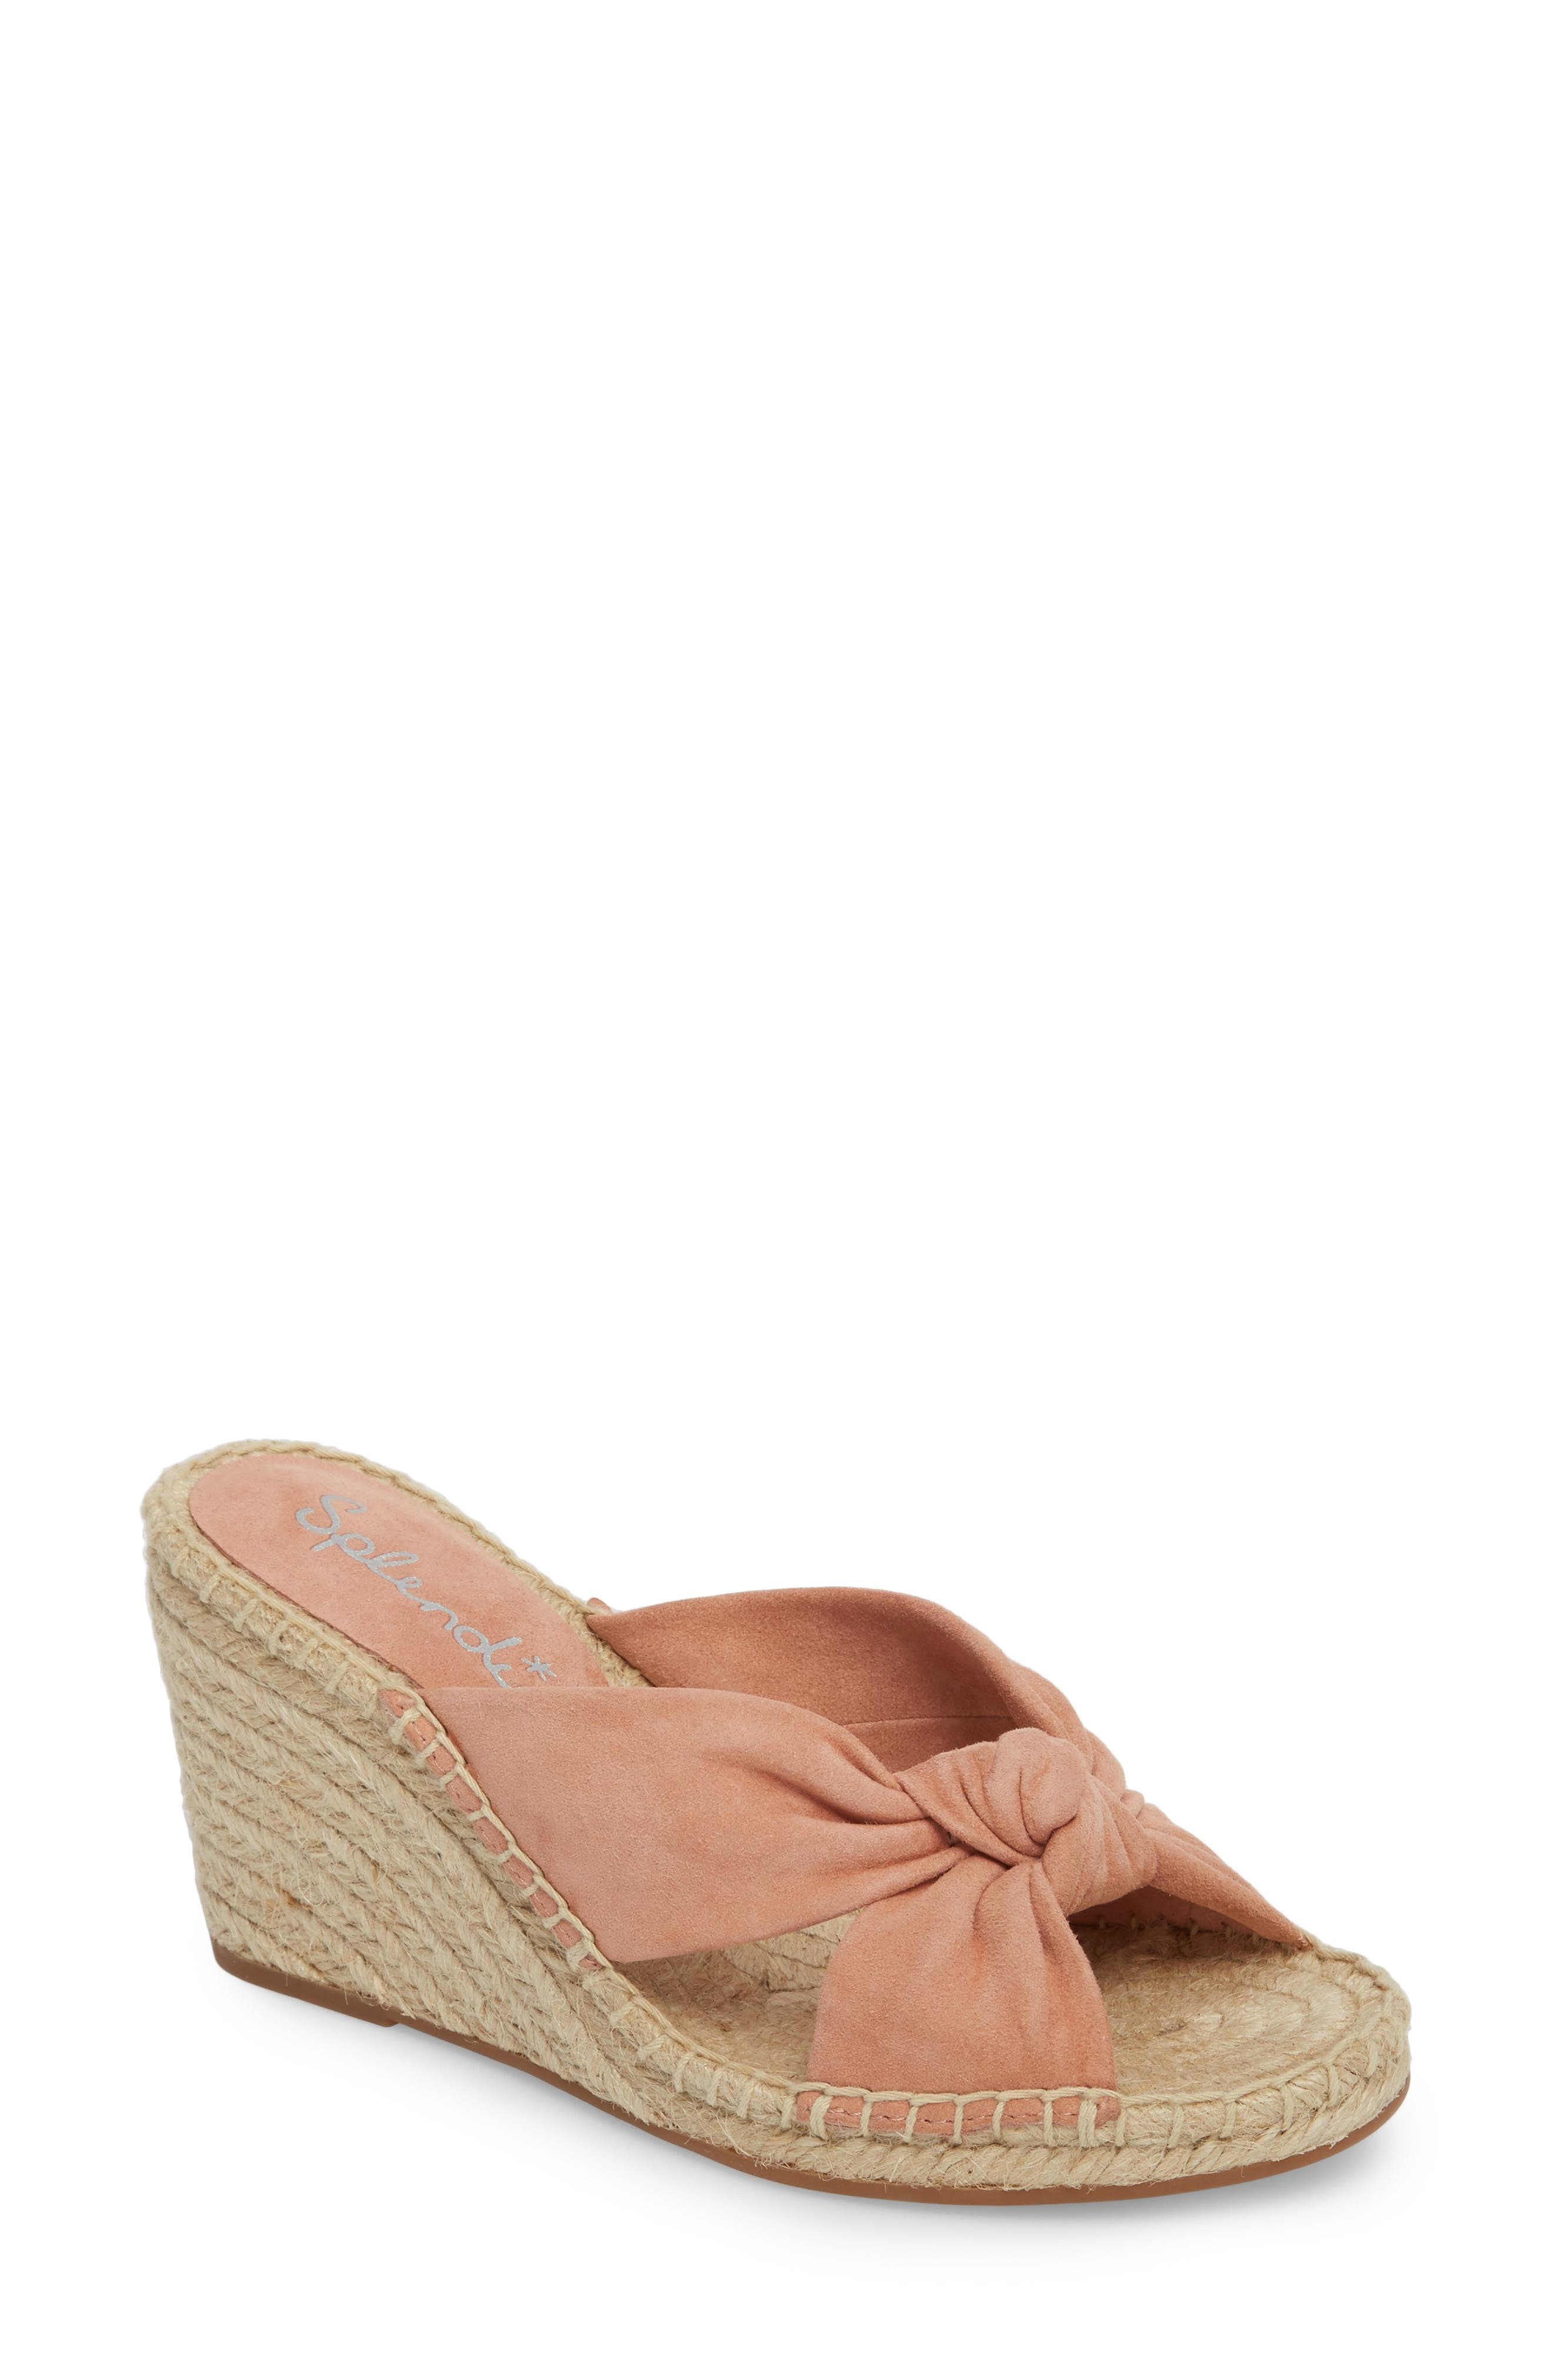 Bautista Knotted Wedge Sandal,                         Main,                         color, DARK BLUSH SUEDE